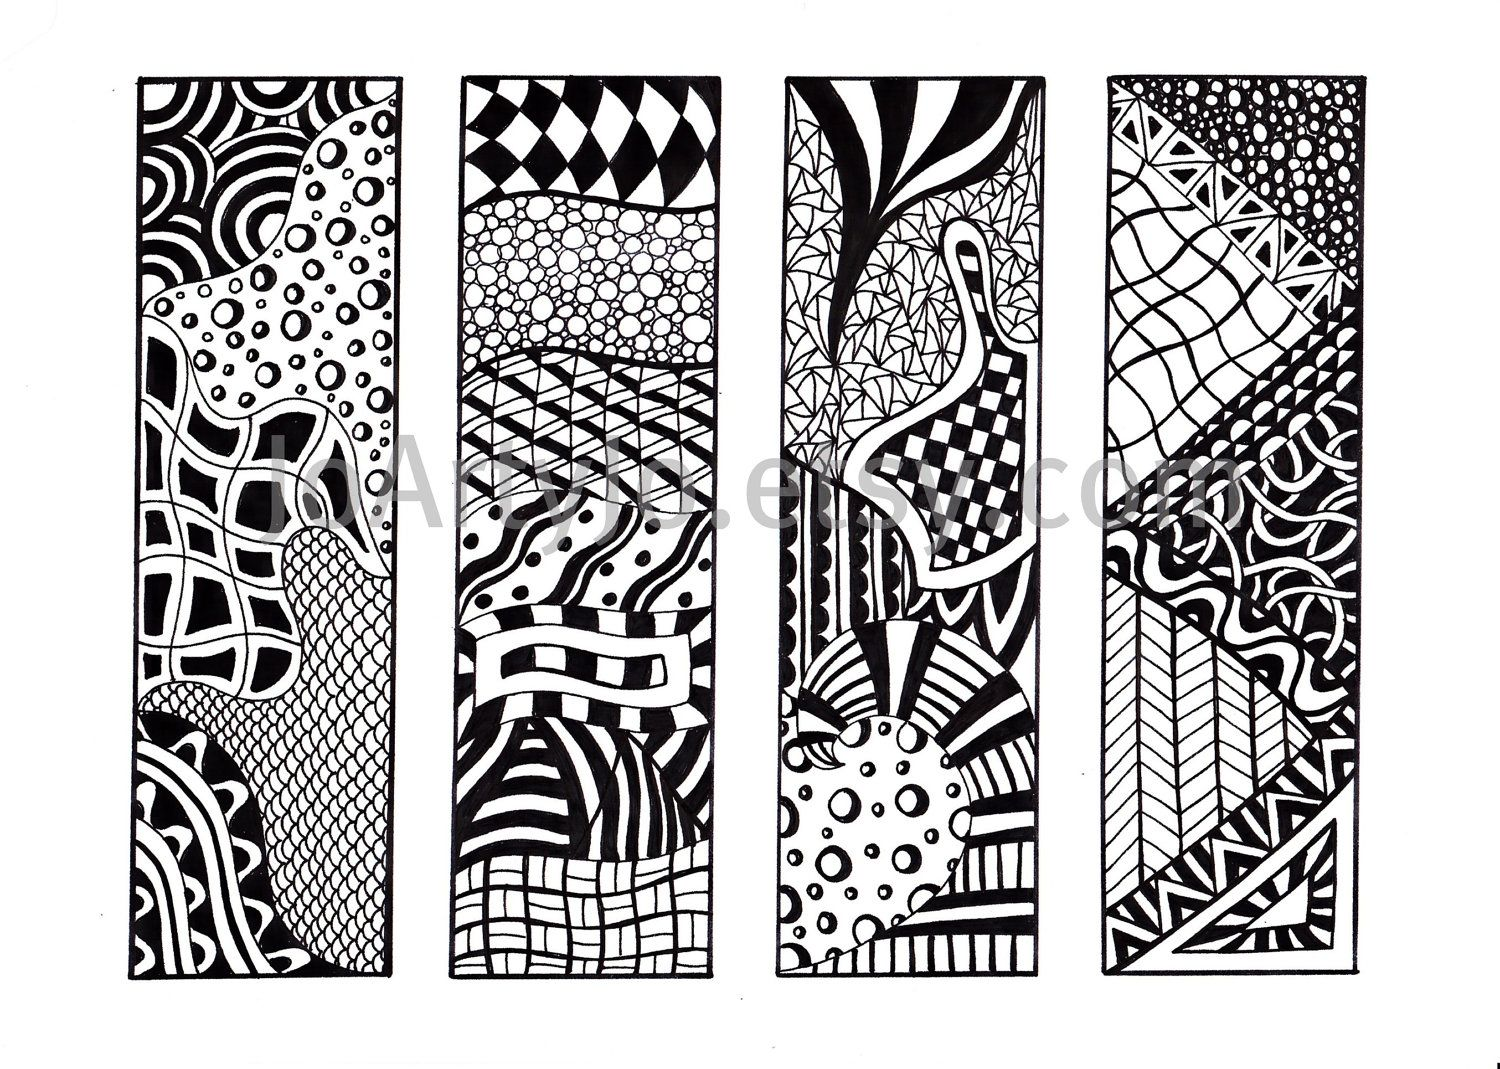 Zen doodle colour - Printable Bookmarks Zendoodle Bookmarks Black And White Zentangle Inspired